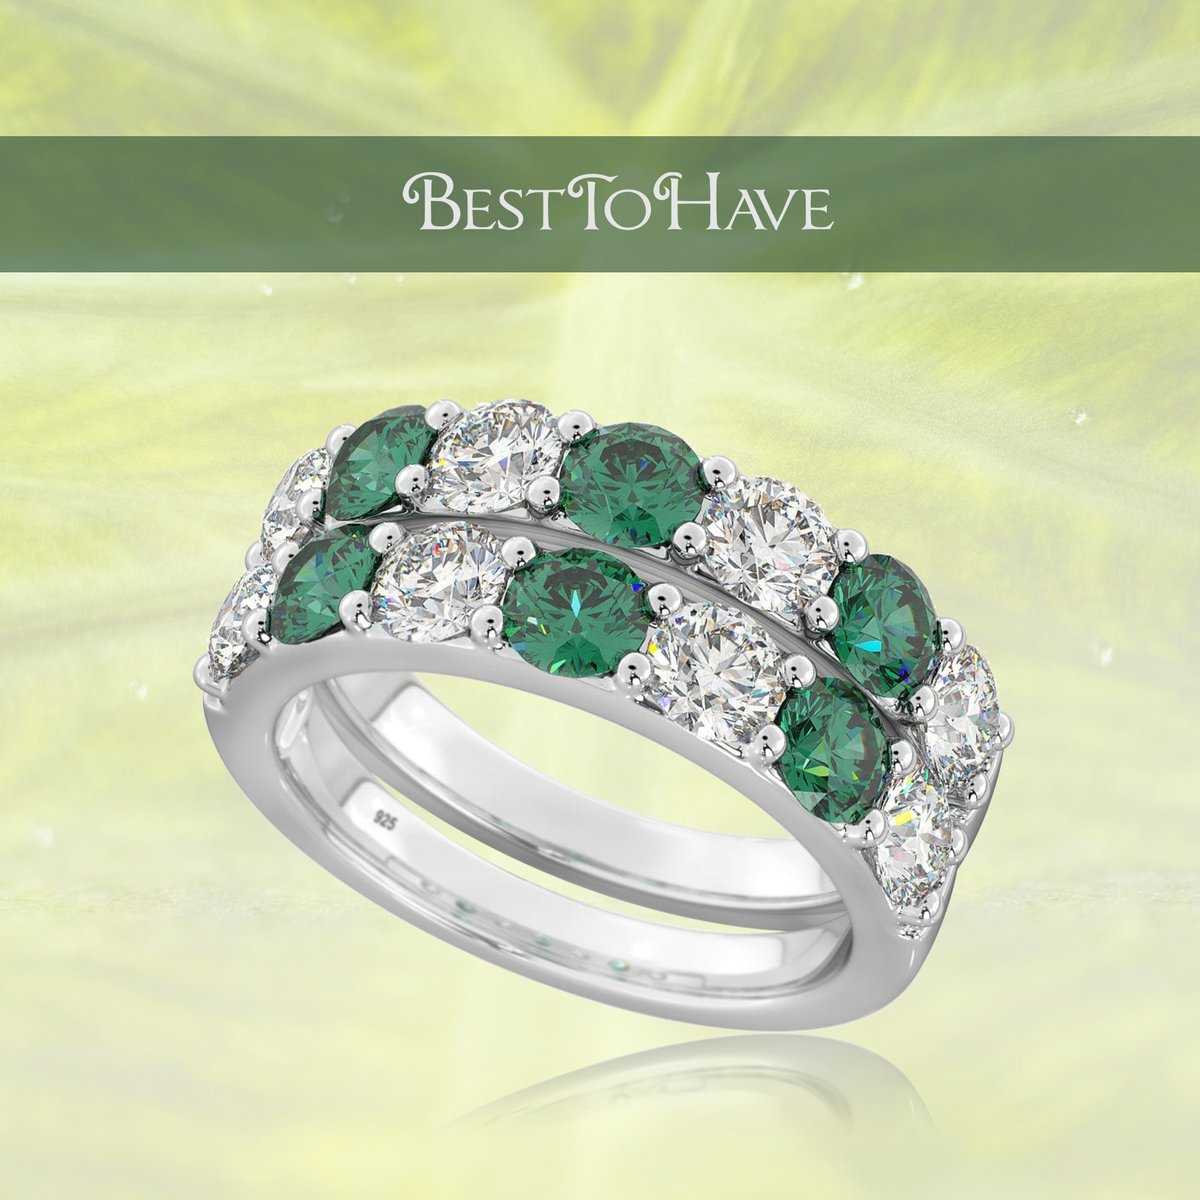 Double Delight Emerald Cubic Zirconia Silver Ring Set Code: 446 £29.99 Shop more:  #womenrings #weddingrings #lovejewelry #silverjewelry #sterlingsilver #cubiczirconia #besttohave #besttohavejewelry #silverring #zirconia #silver925 #engagement #wedding